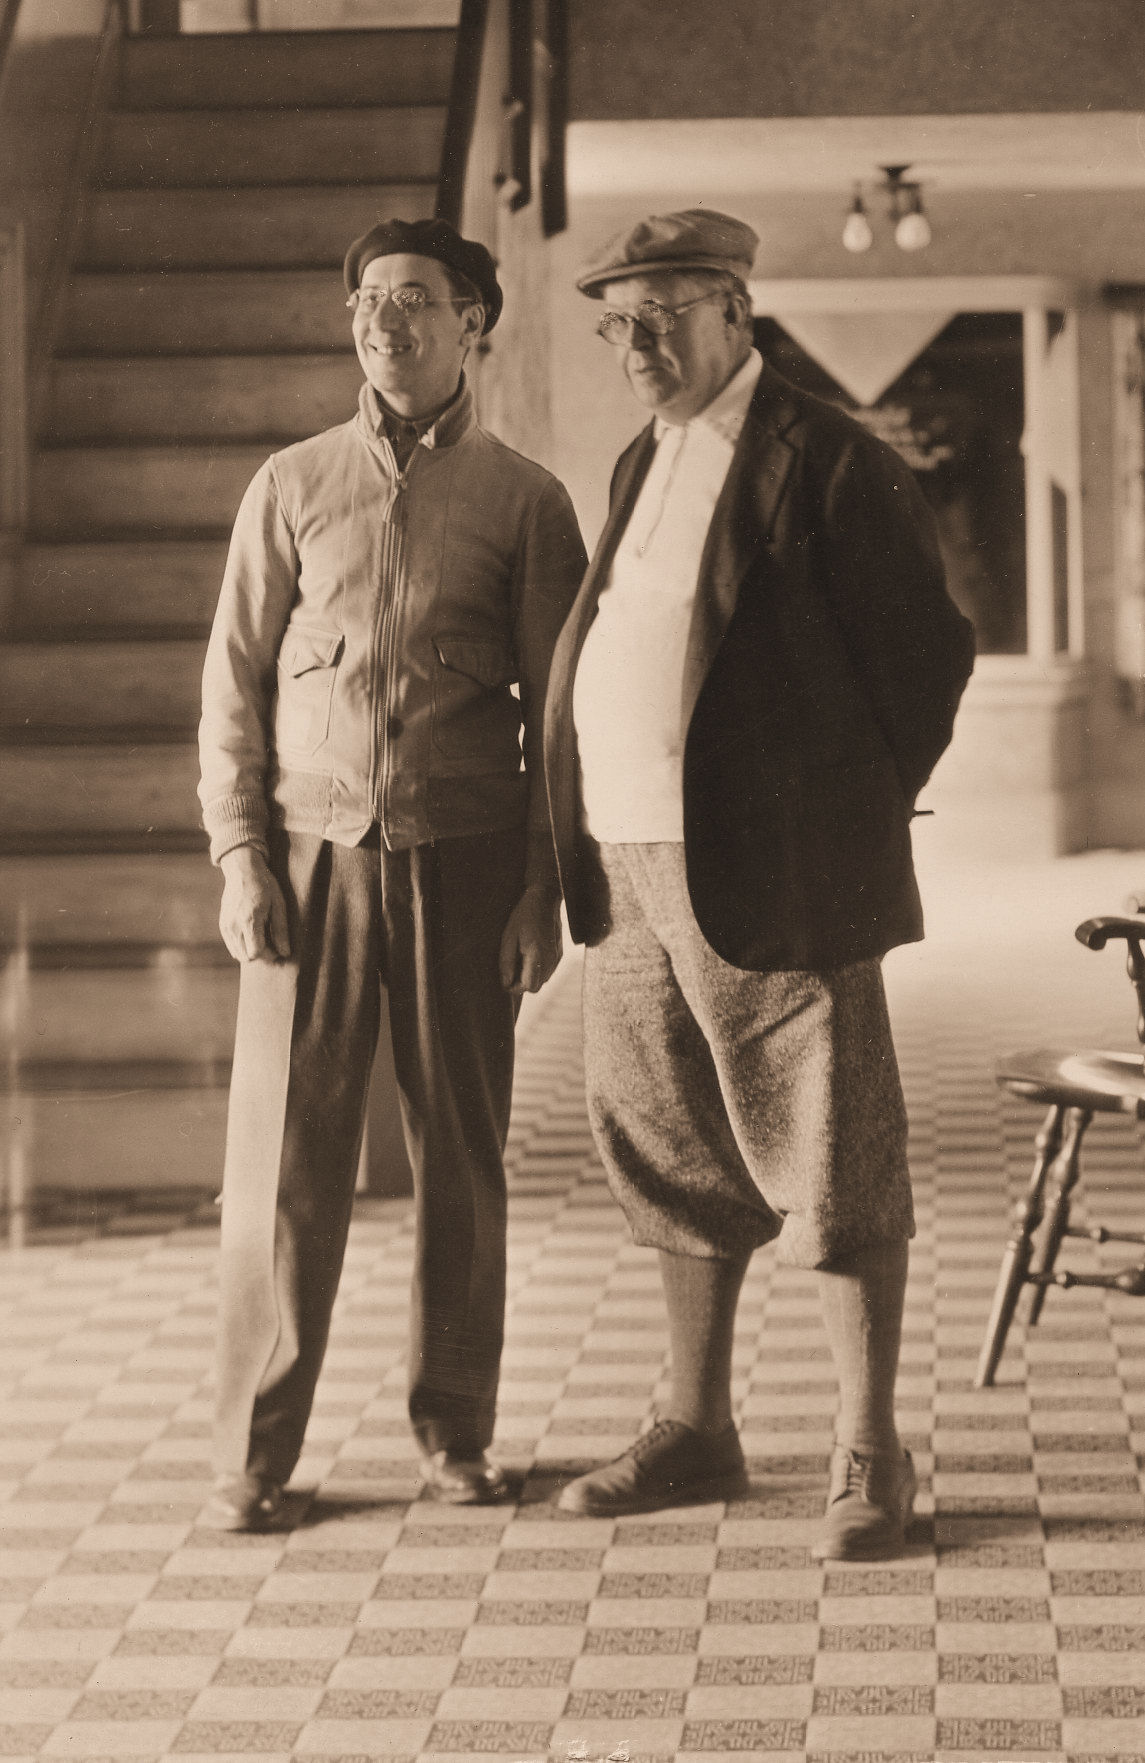 Groucho Marx with Owen Davis inside the Lobby of Lakewood Theater - 1934